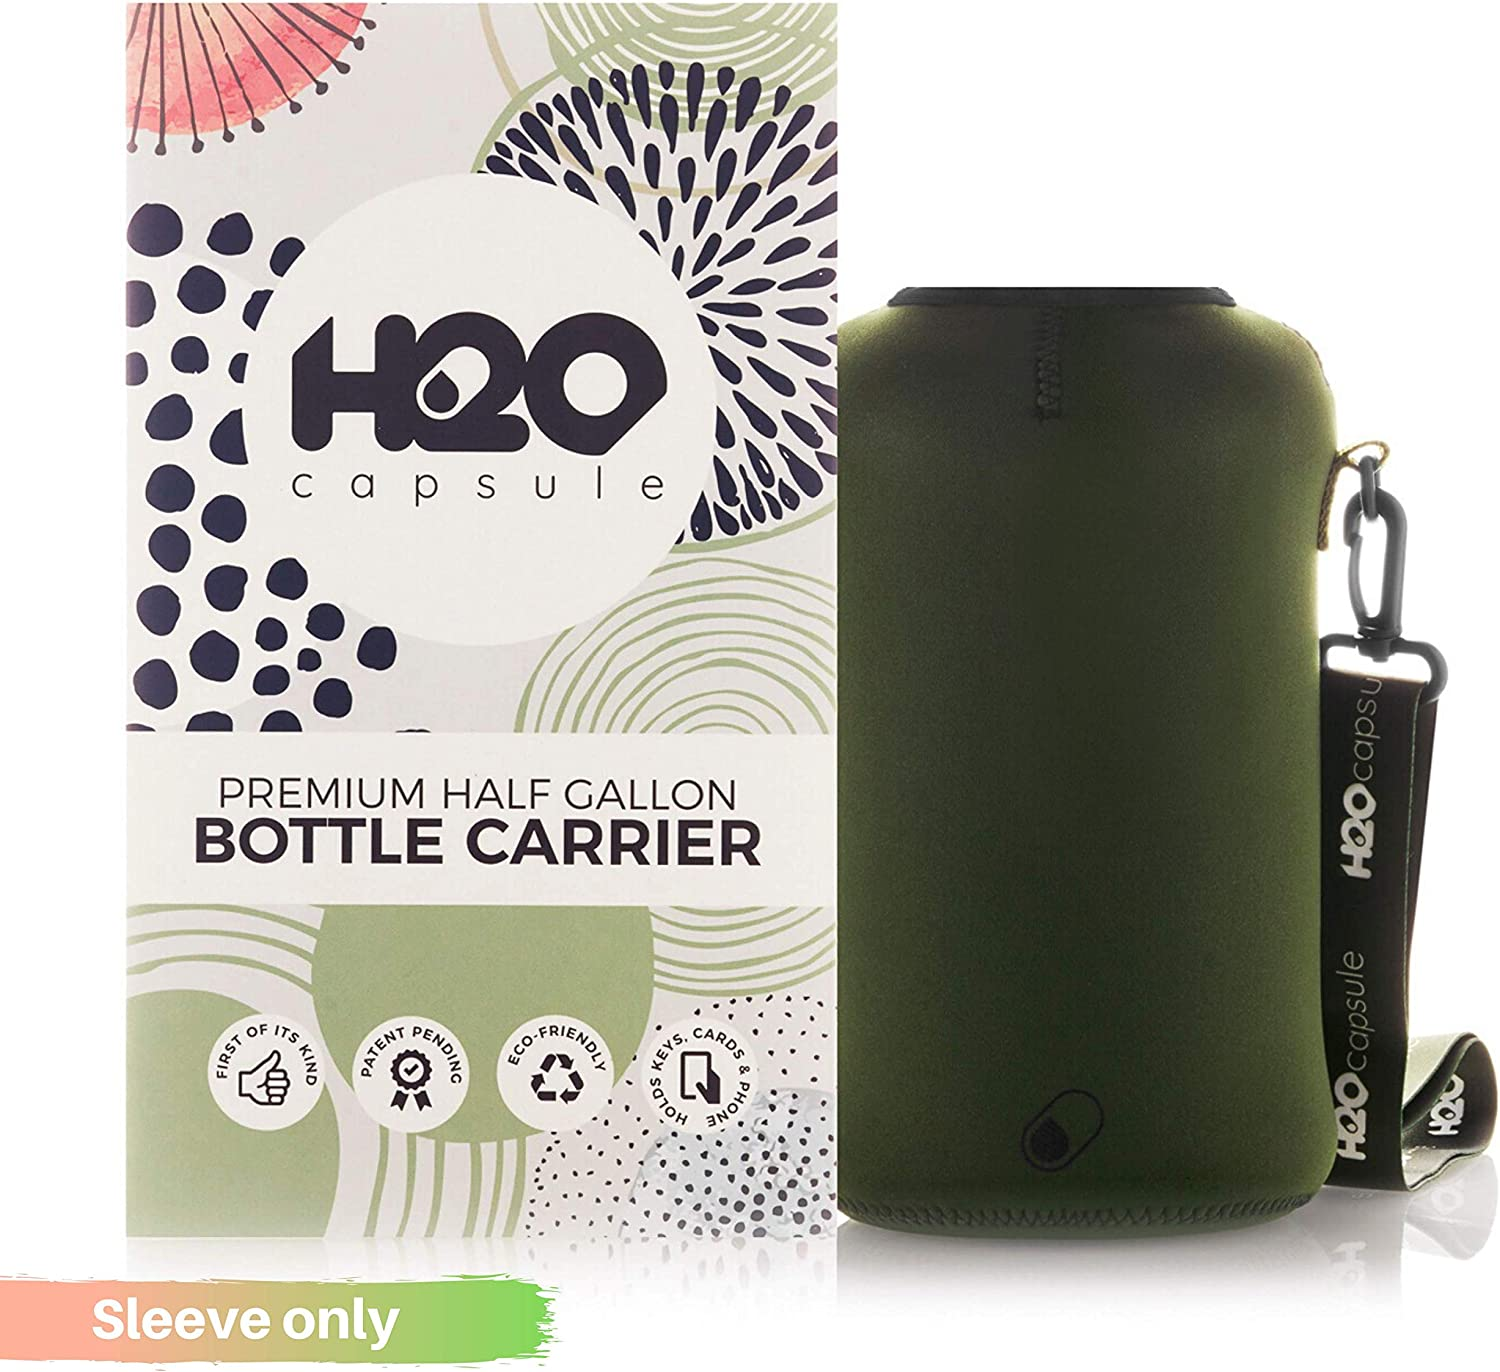 H2O Capsule Half Gallon Water Bottle Holder with Strap Water Bottle Carrier with Shoulder Strap (Patent Pending) - Neoprene Water Bottle Sleeve for Large 2.2 Liter/74oz Drink Bottle